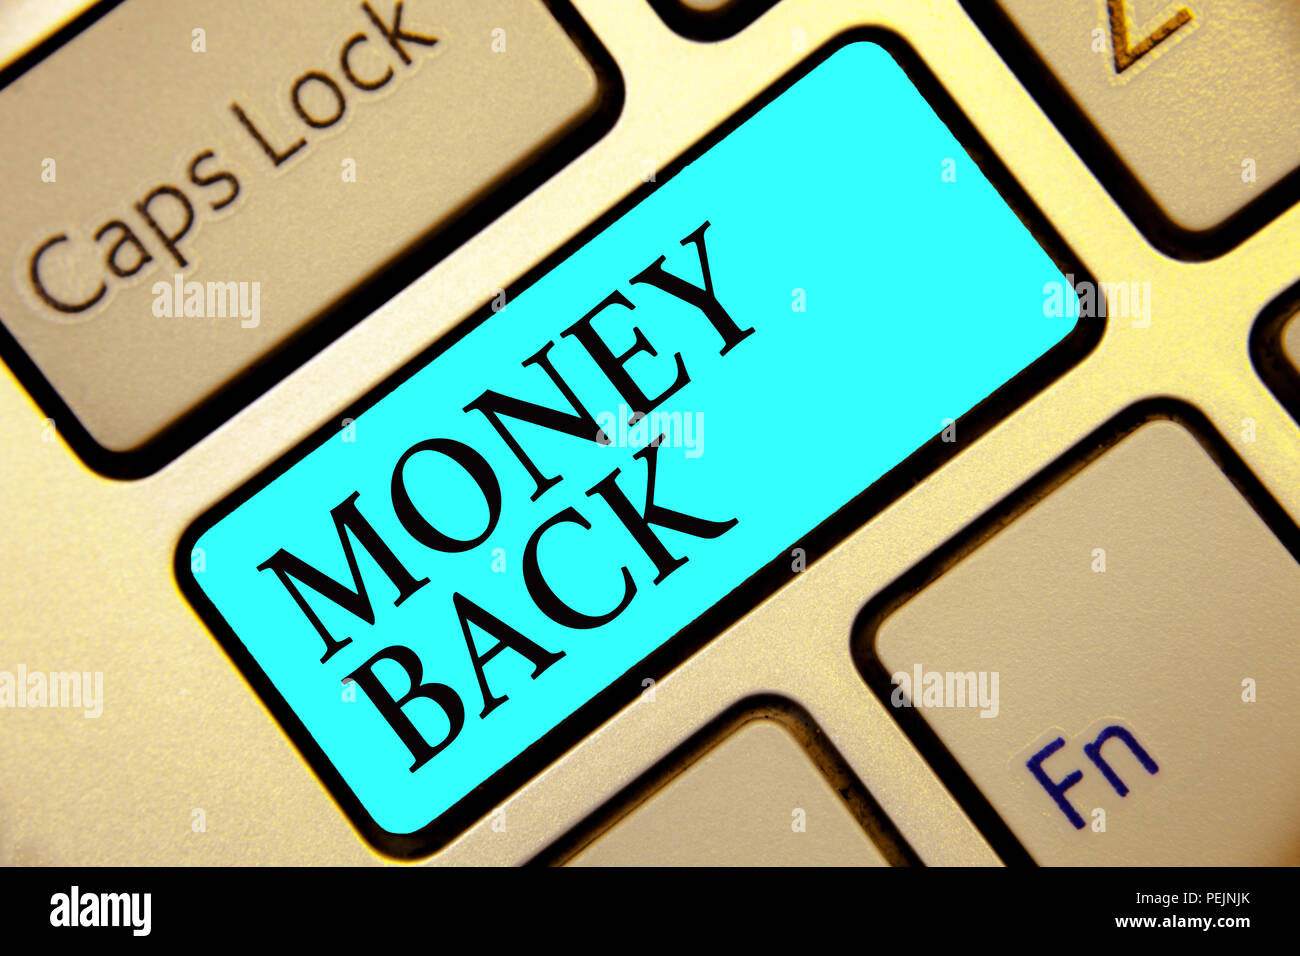 How to return money for a defective phone that is still under warranty